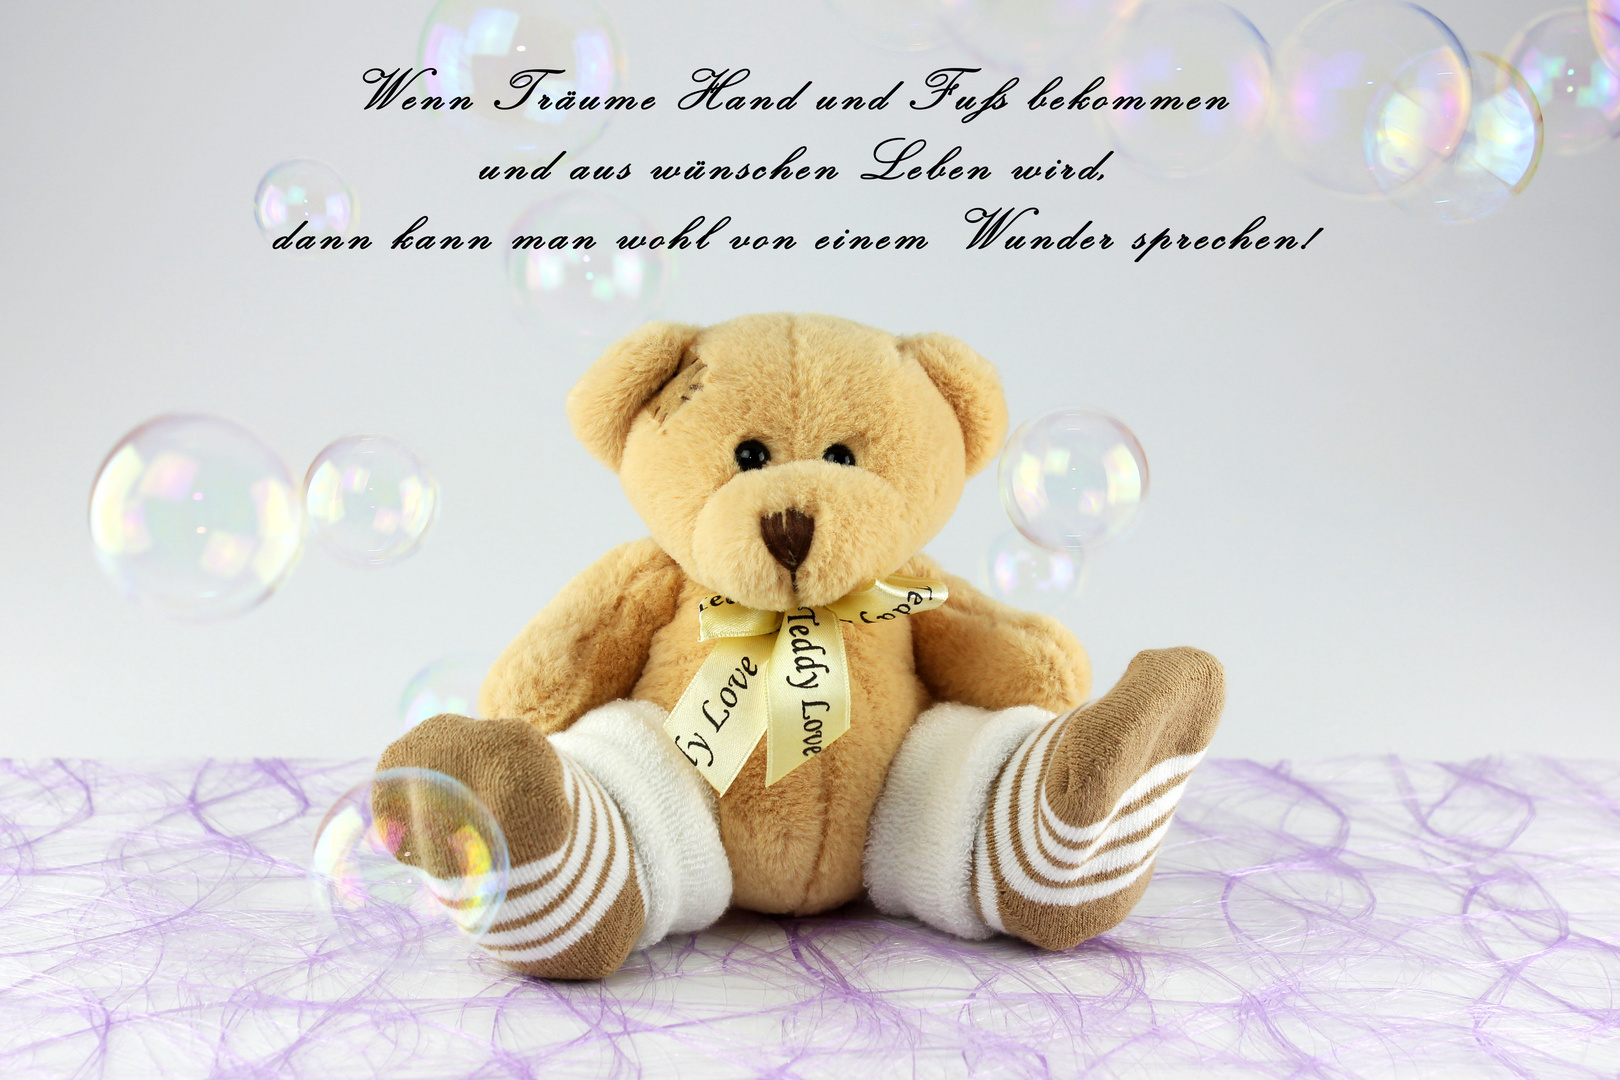 The last water hole in the west: the Colorado Big Thompson Project and the Northern Colorado Water Conservancy